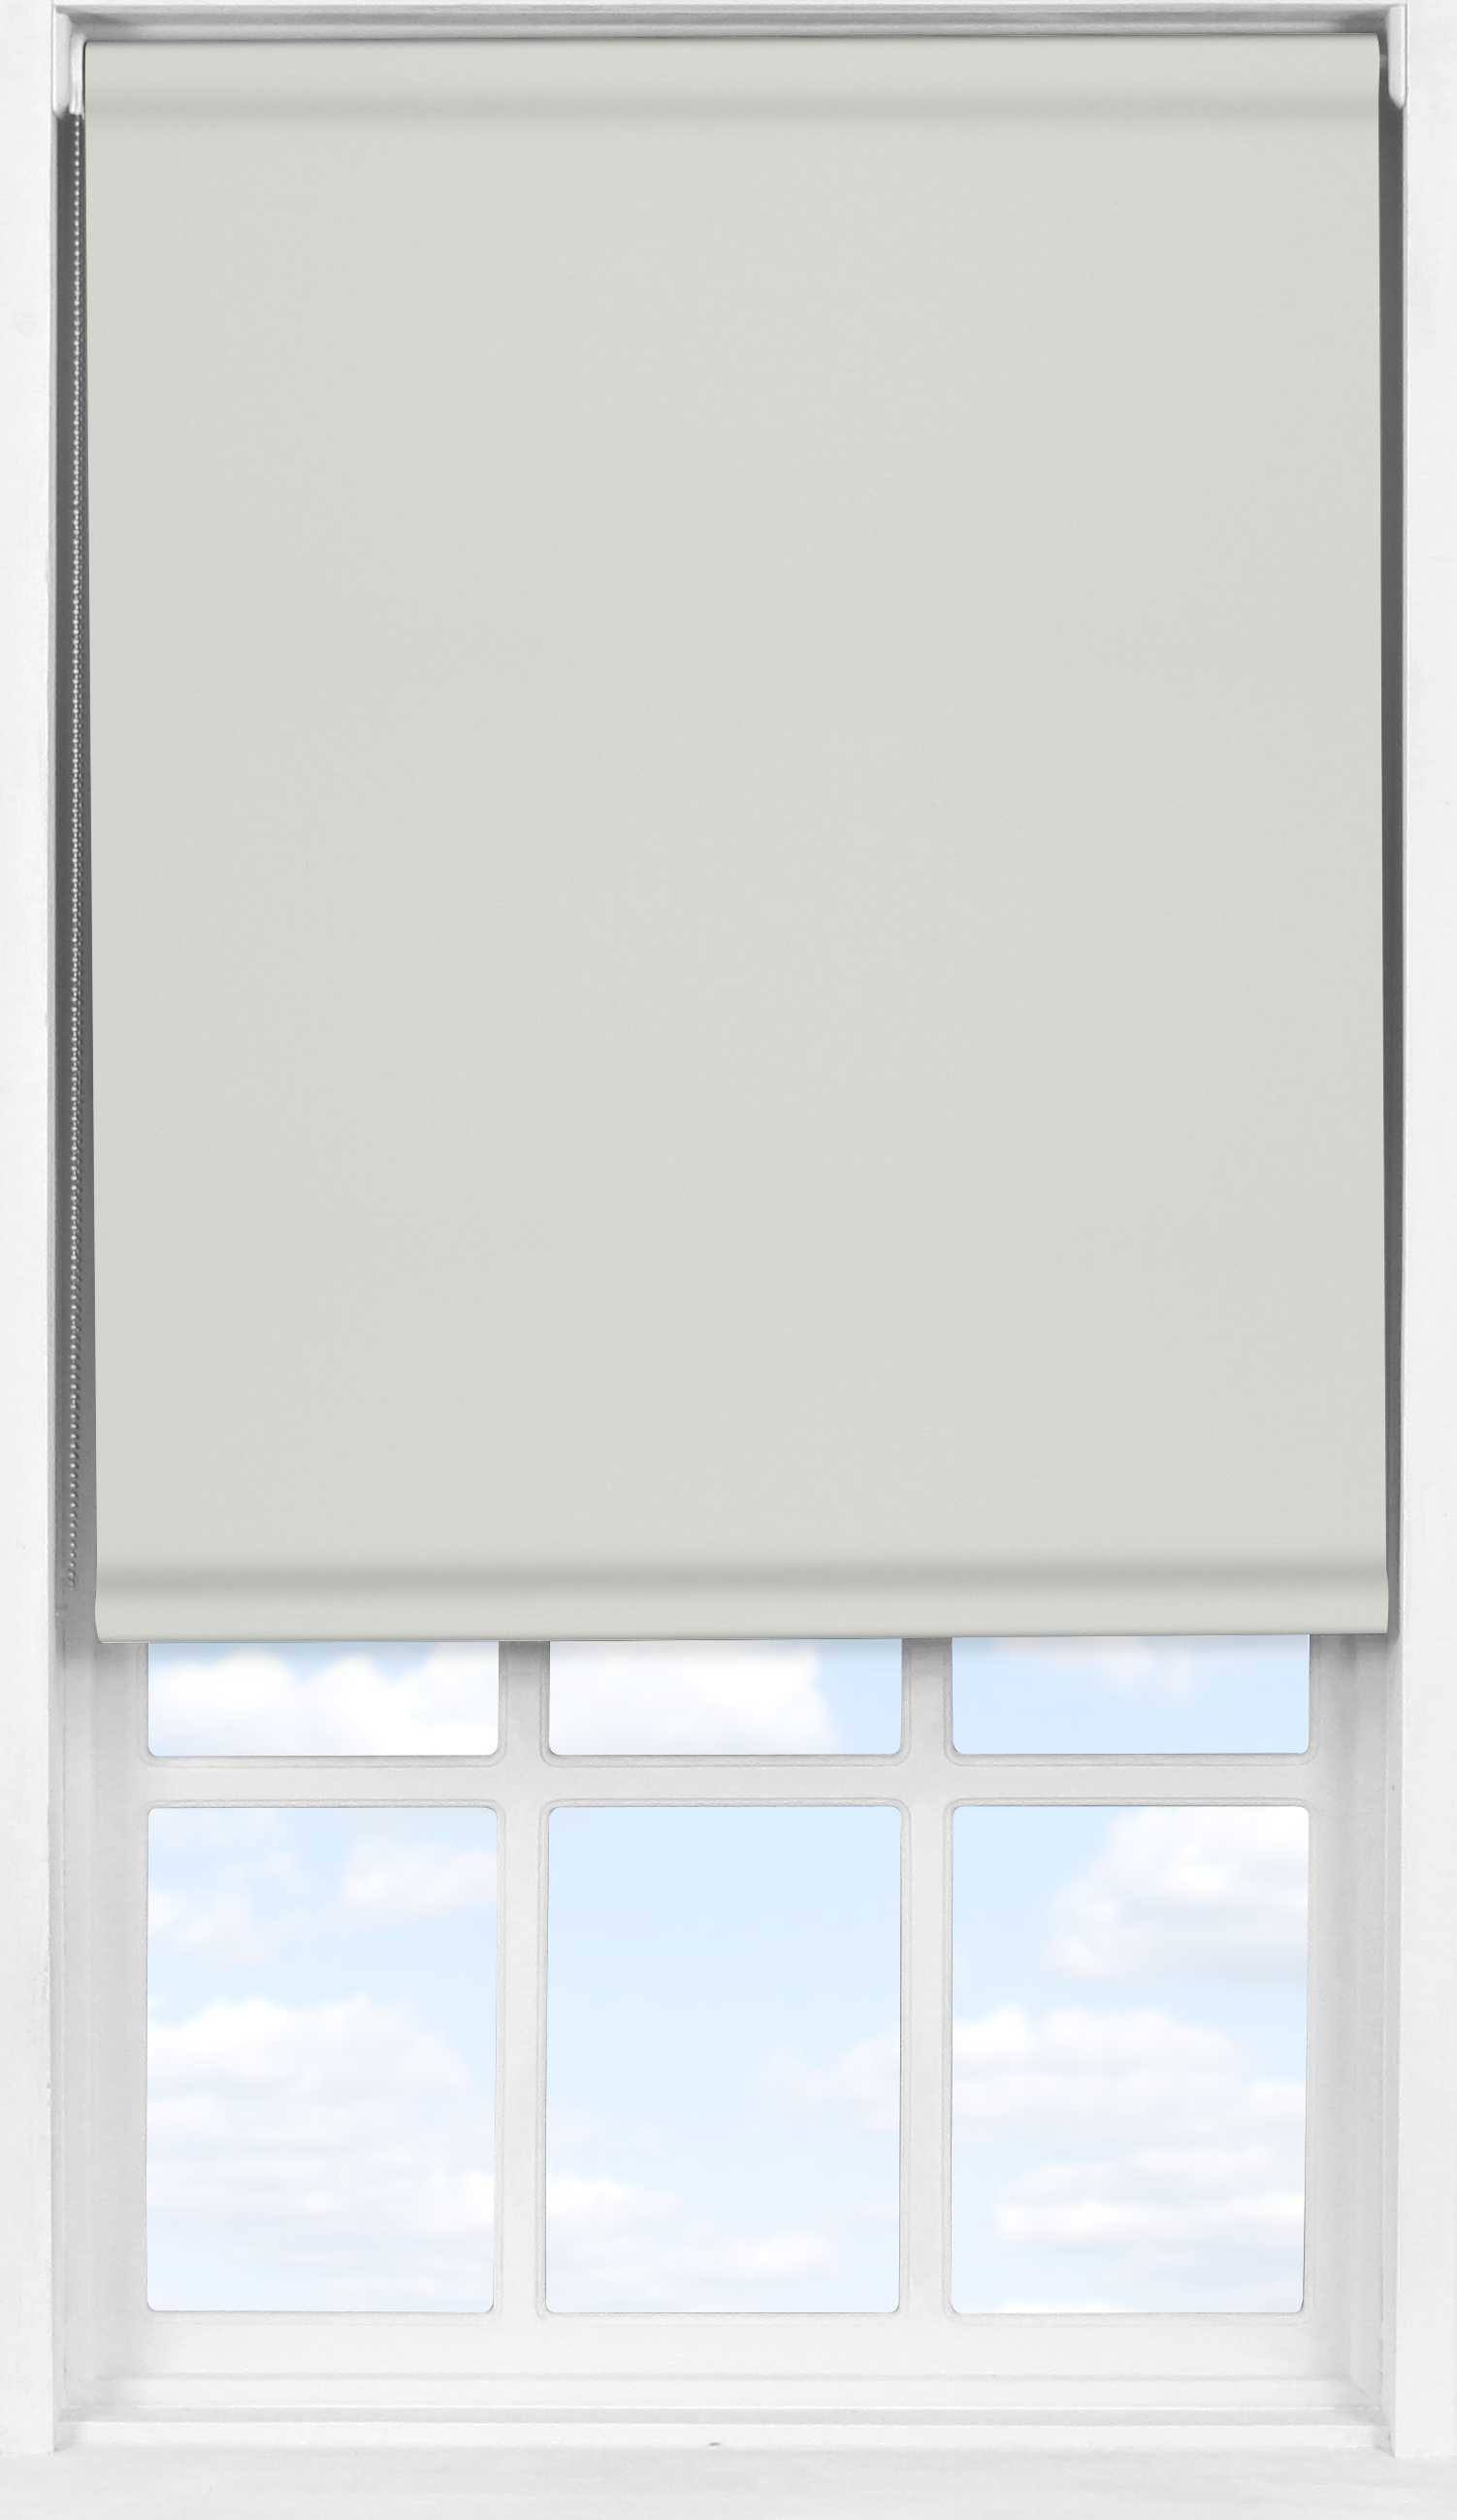 Easifit Roller Blind in Soft Grey Mist Blackout